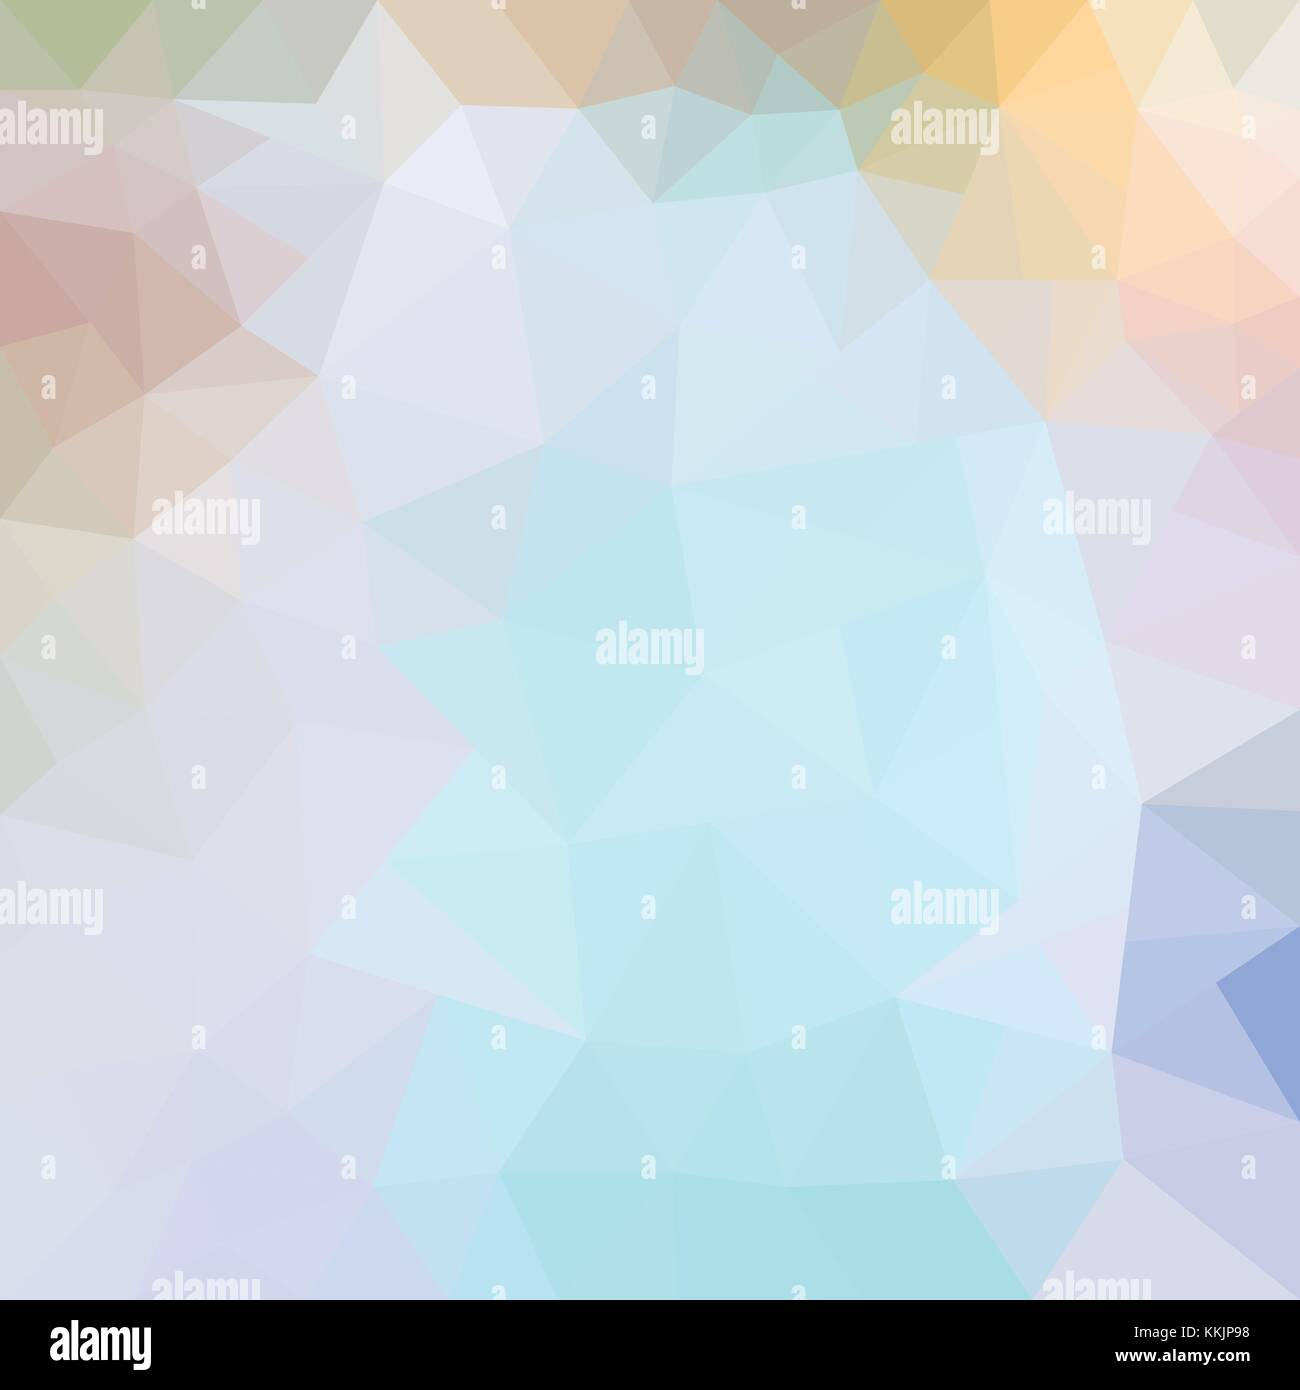 Abstract mosaic background. Triangle geometric background. Design elements. Vector illustration. Pink, blue, violet Stock Vector